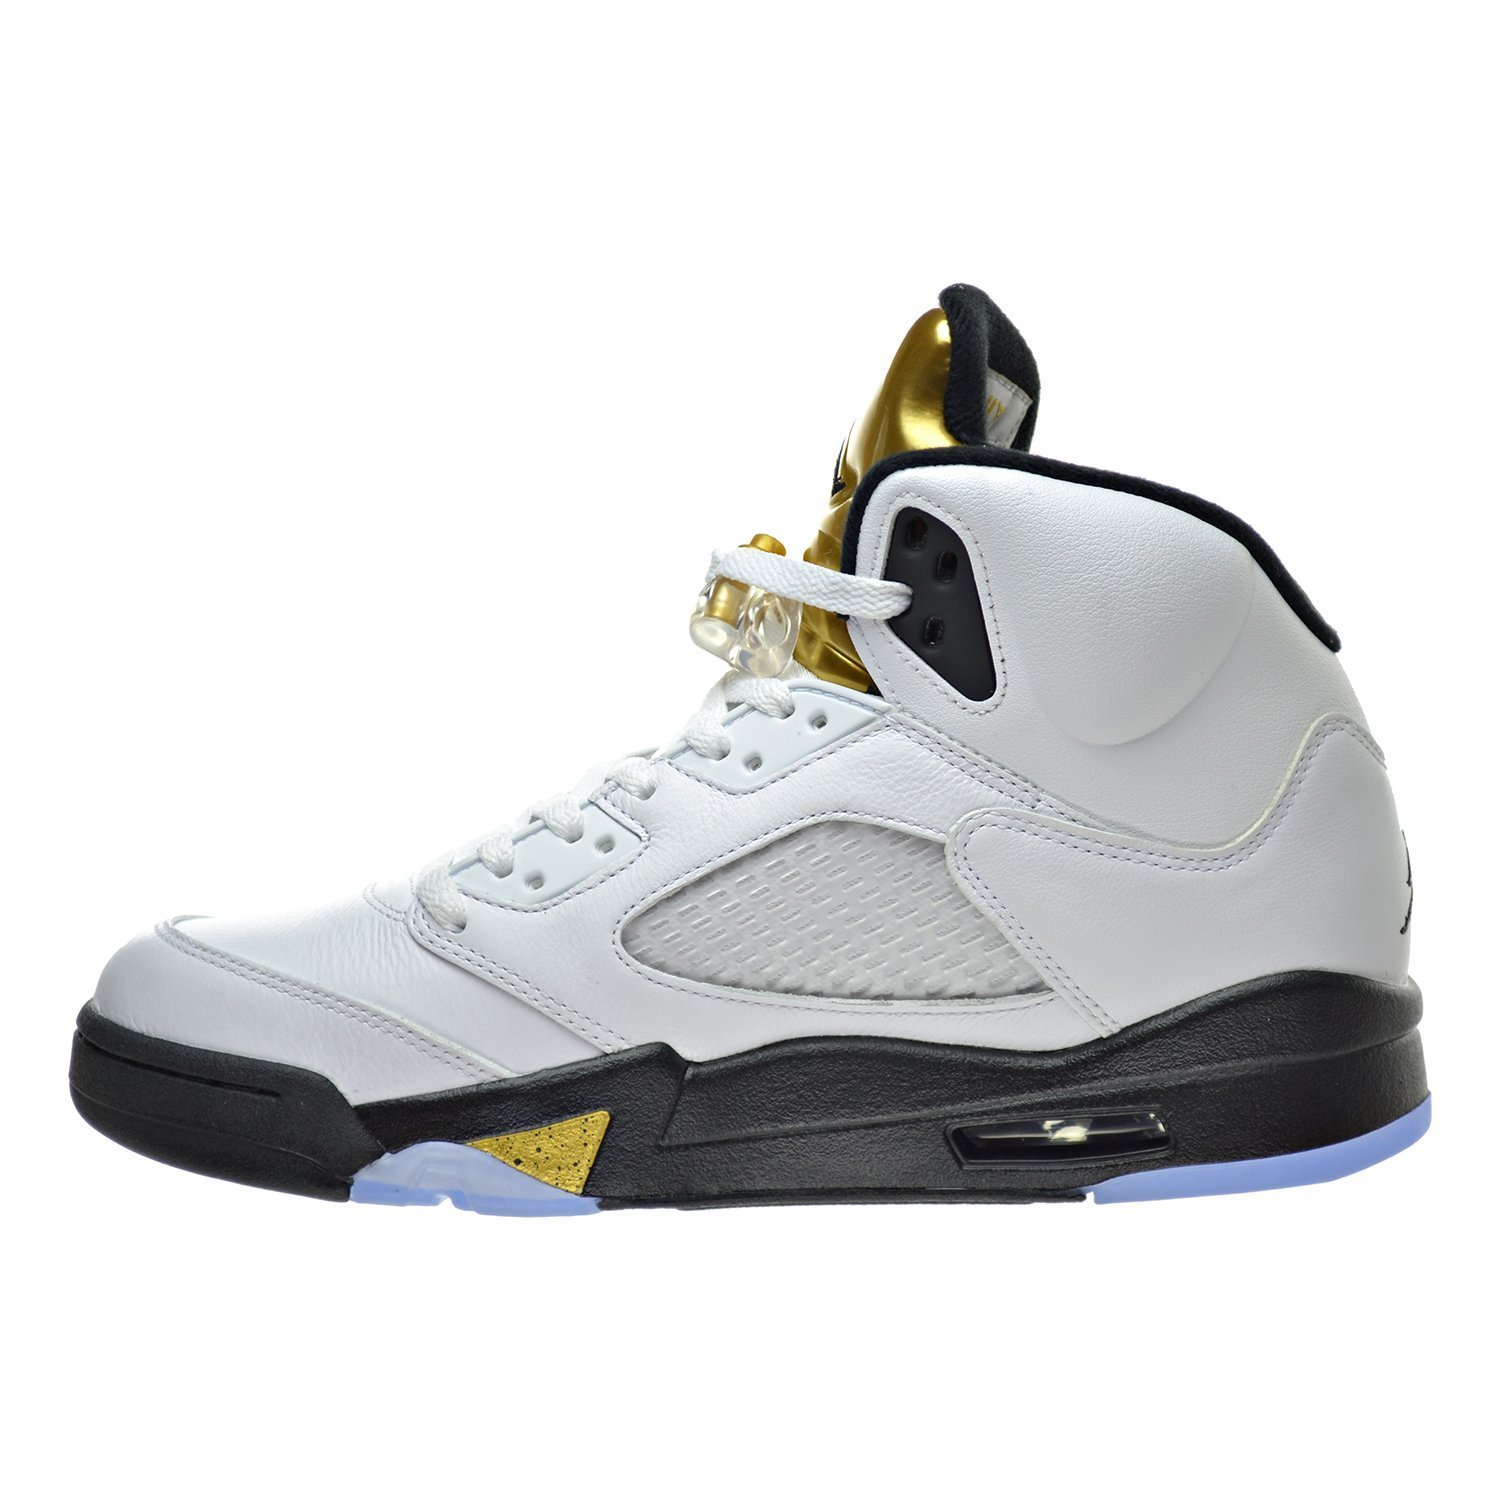 best website f956a 7c057 coupon air jordan 5 gold medal year 8256a c84c4